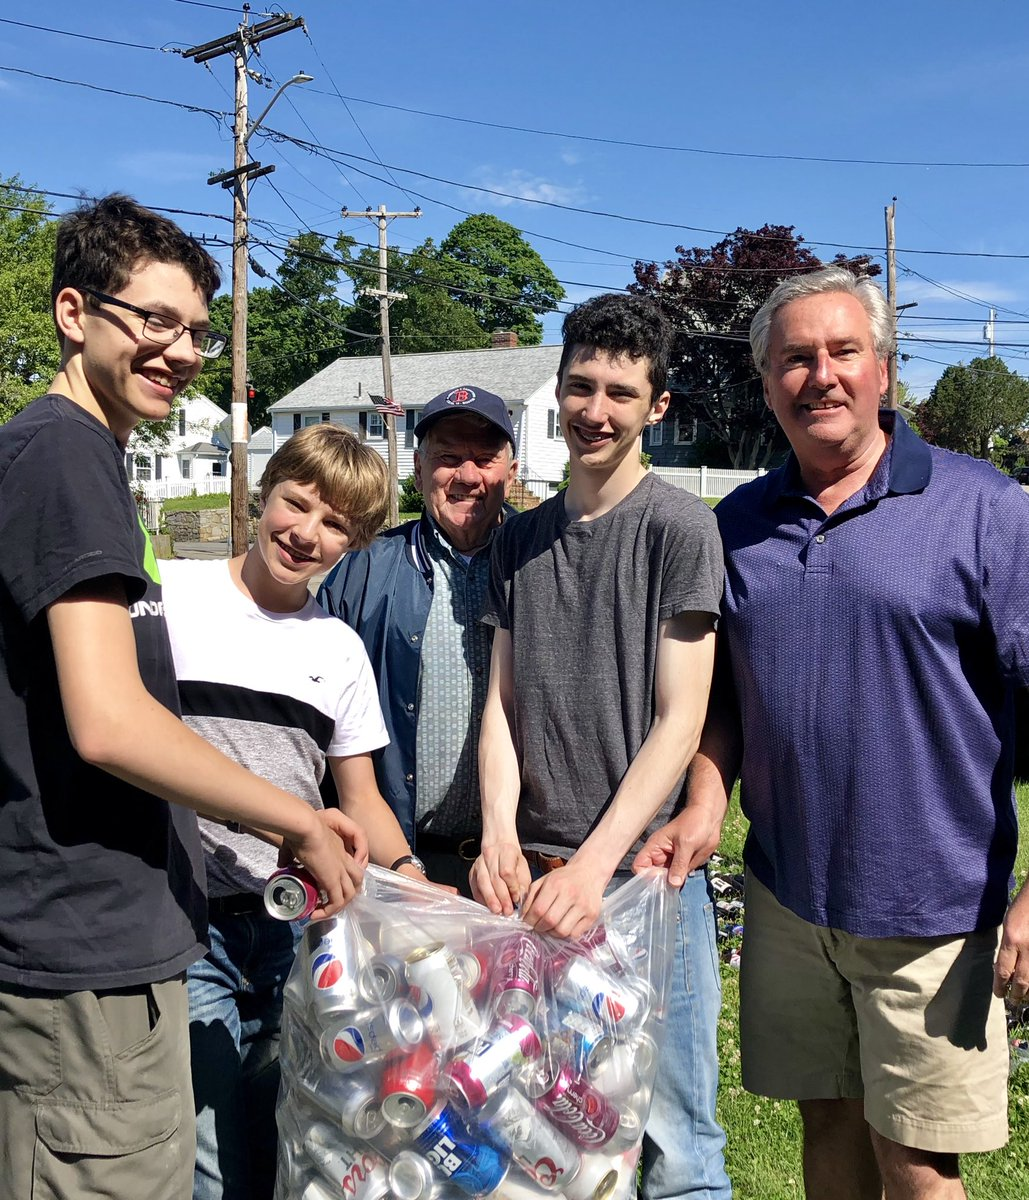 Stop by the First Church in #Squantum this morning to support the Boy Scout bottle drive .#boyscouts http://www.boyscouttroop42.org  @SquantumScoop #MApoli @CityofQuincy #Scouting